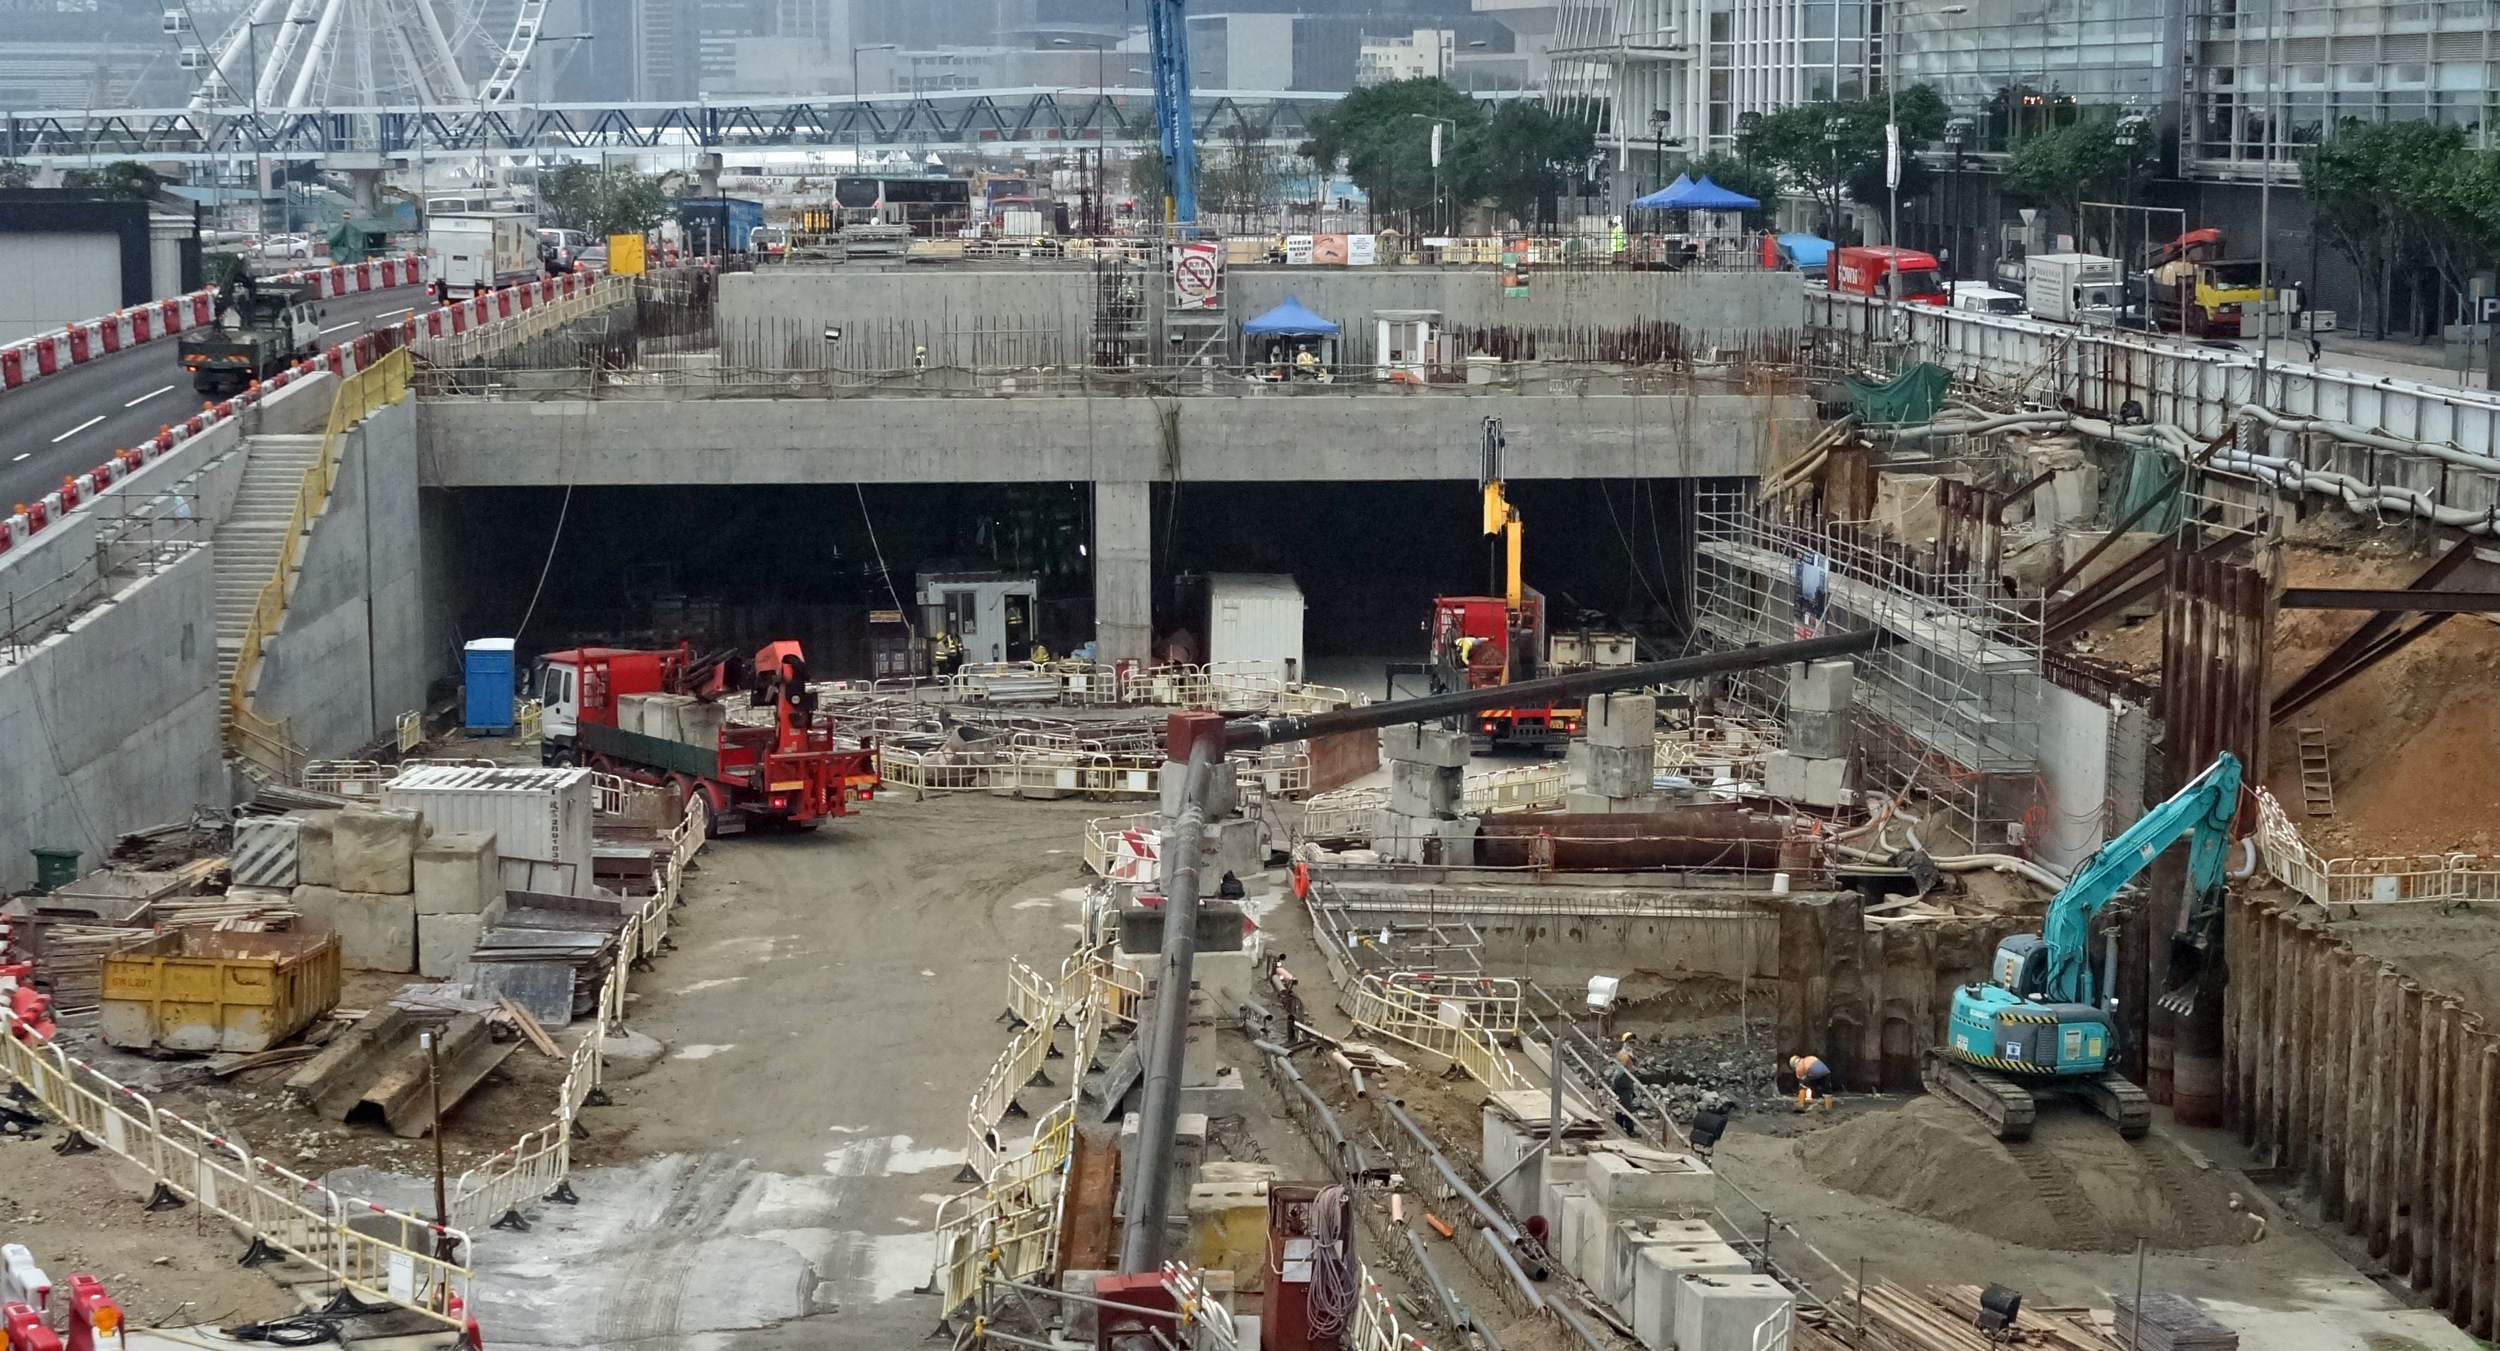 This is the entrance to the new Central - Wanchai - Causeway Bay - North Point bypass which in theory will open in 2017, so we have some way to go yet...